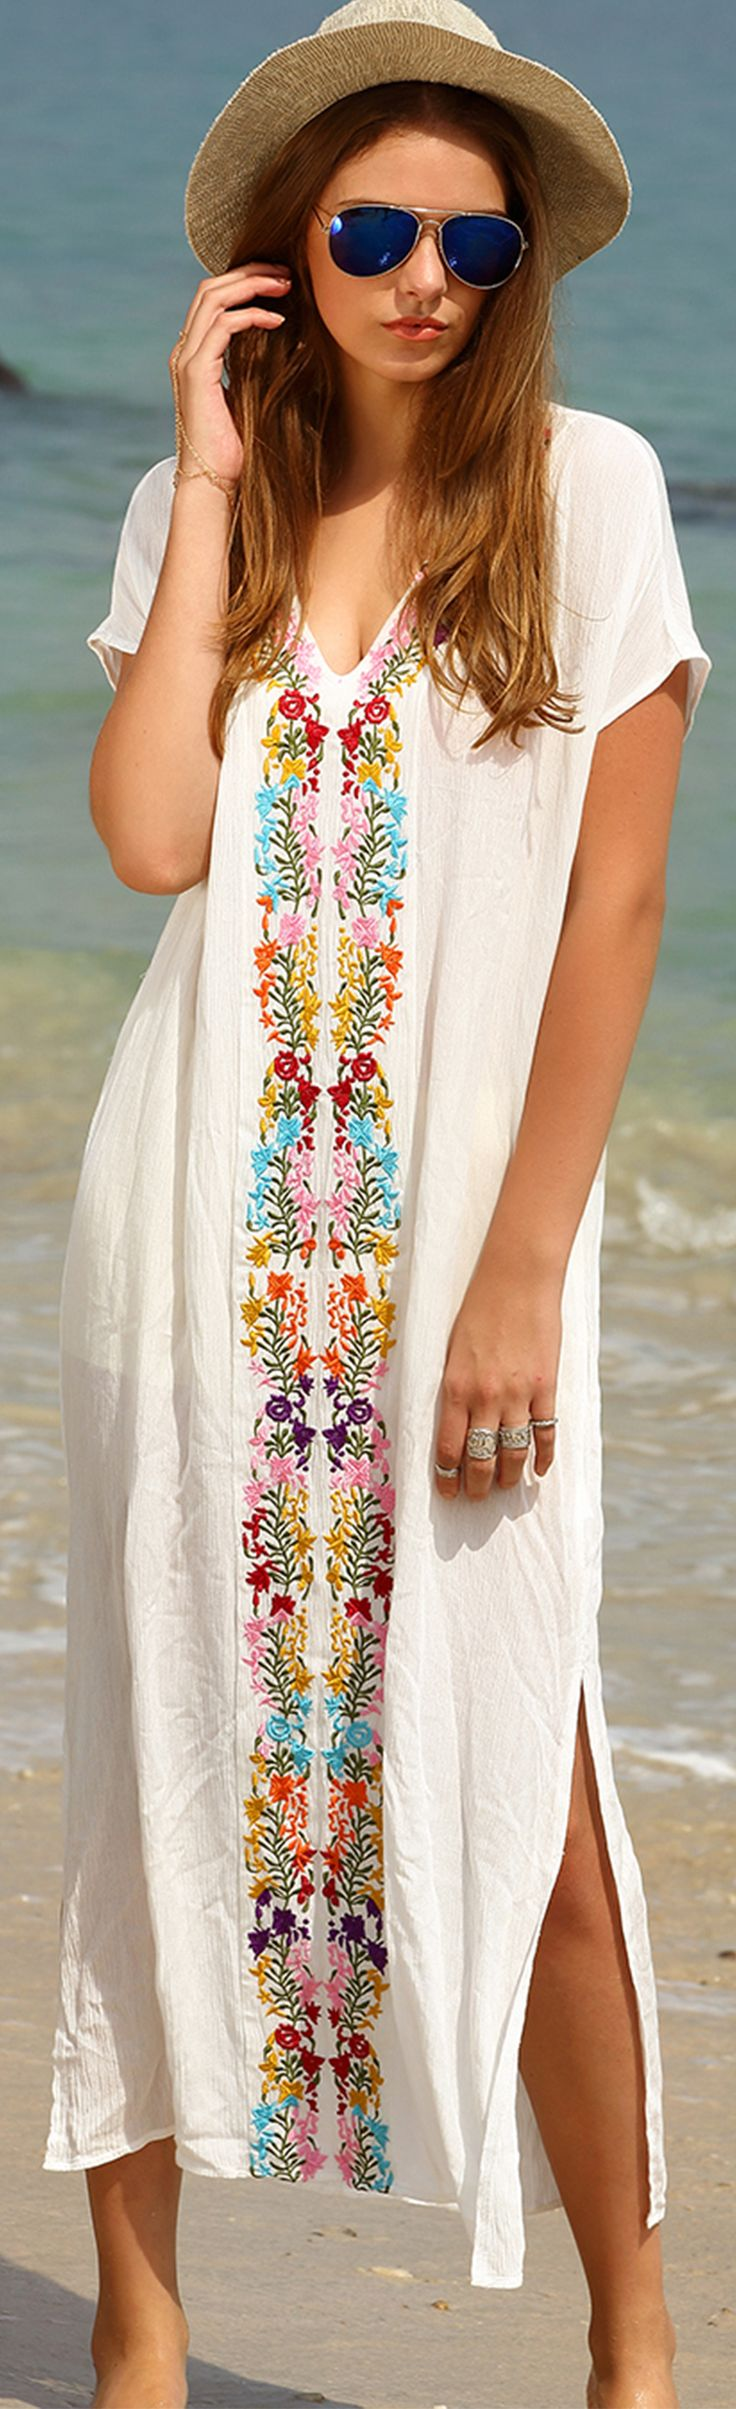 Styling tips for your beach dress